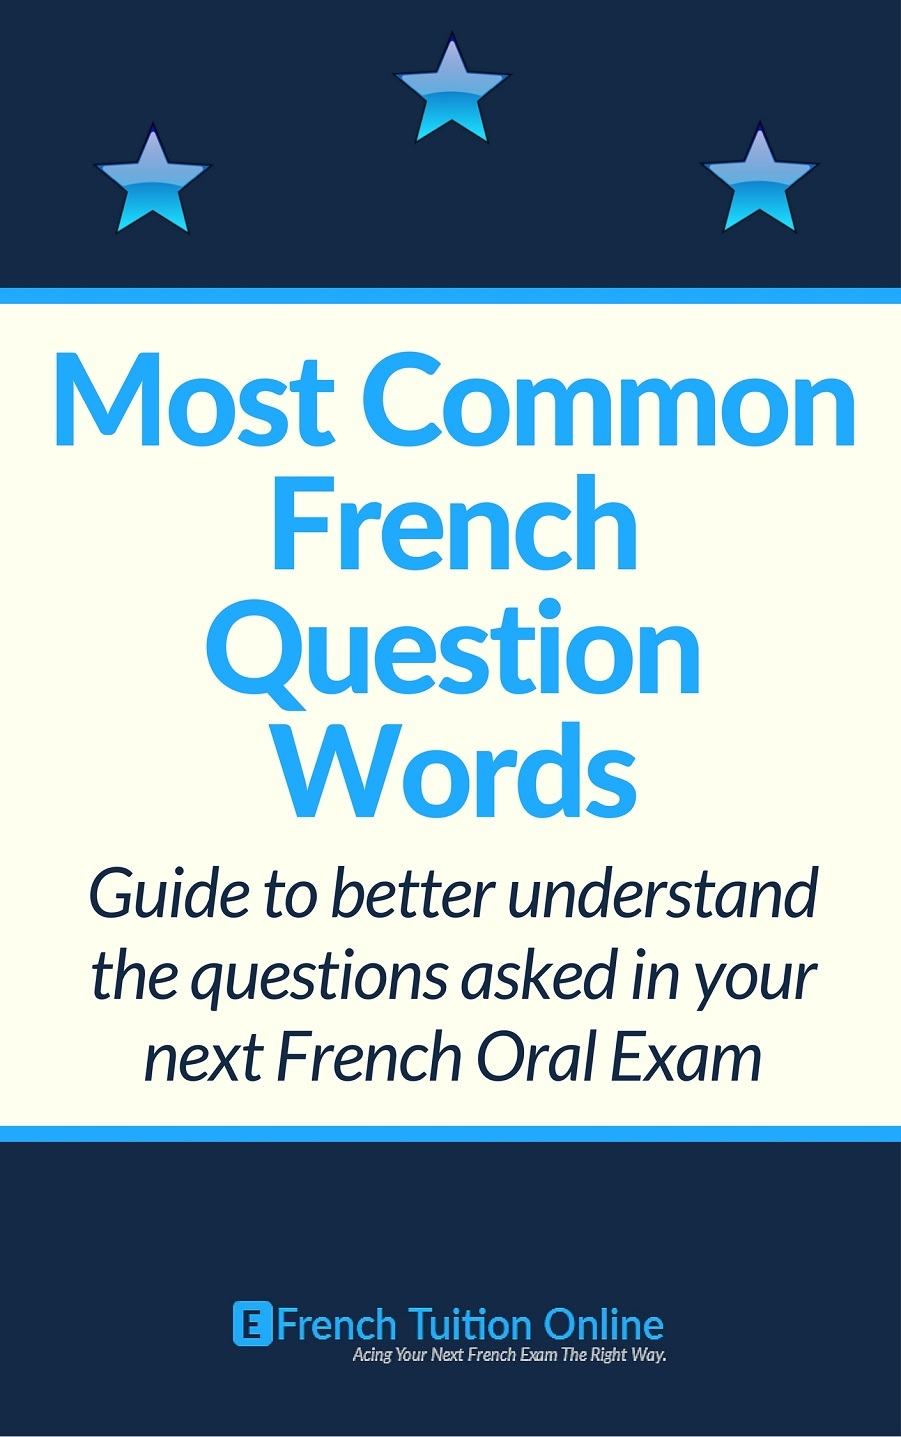 Top French Question Words For your Next Exam - EFrench Tuition Online